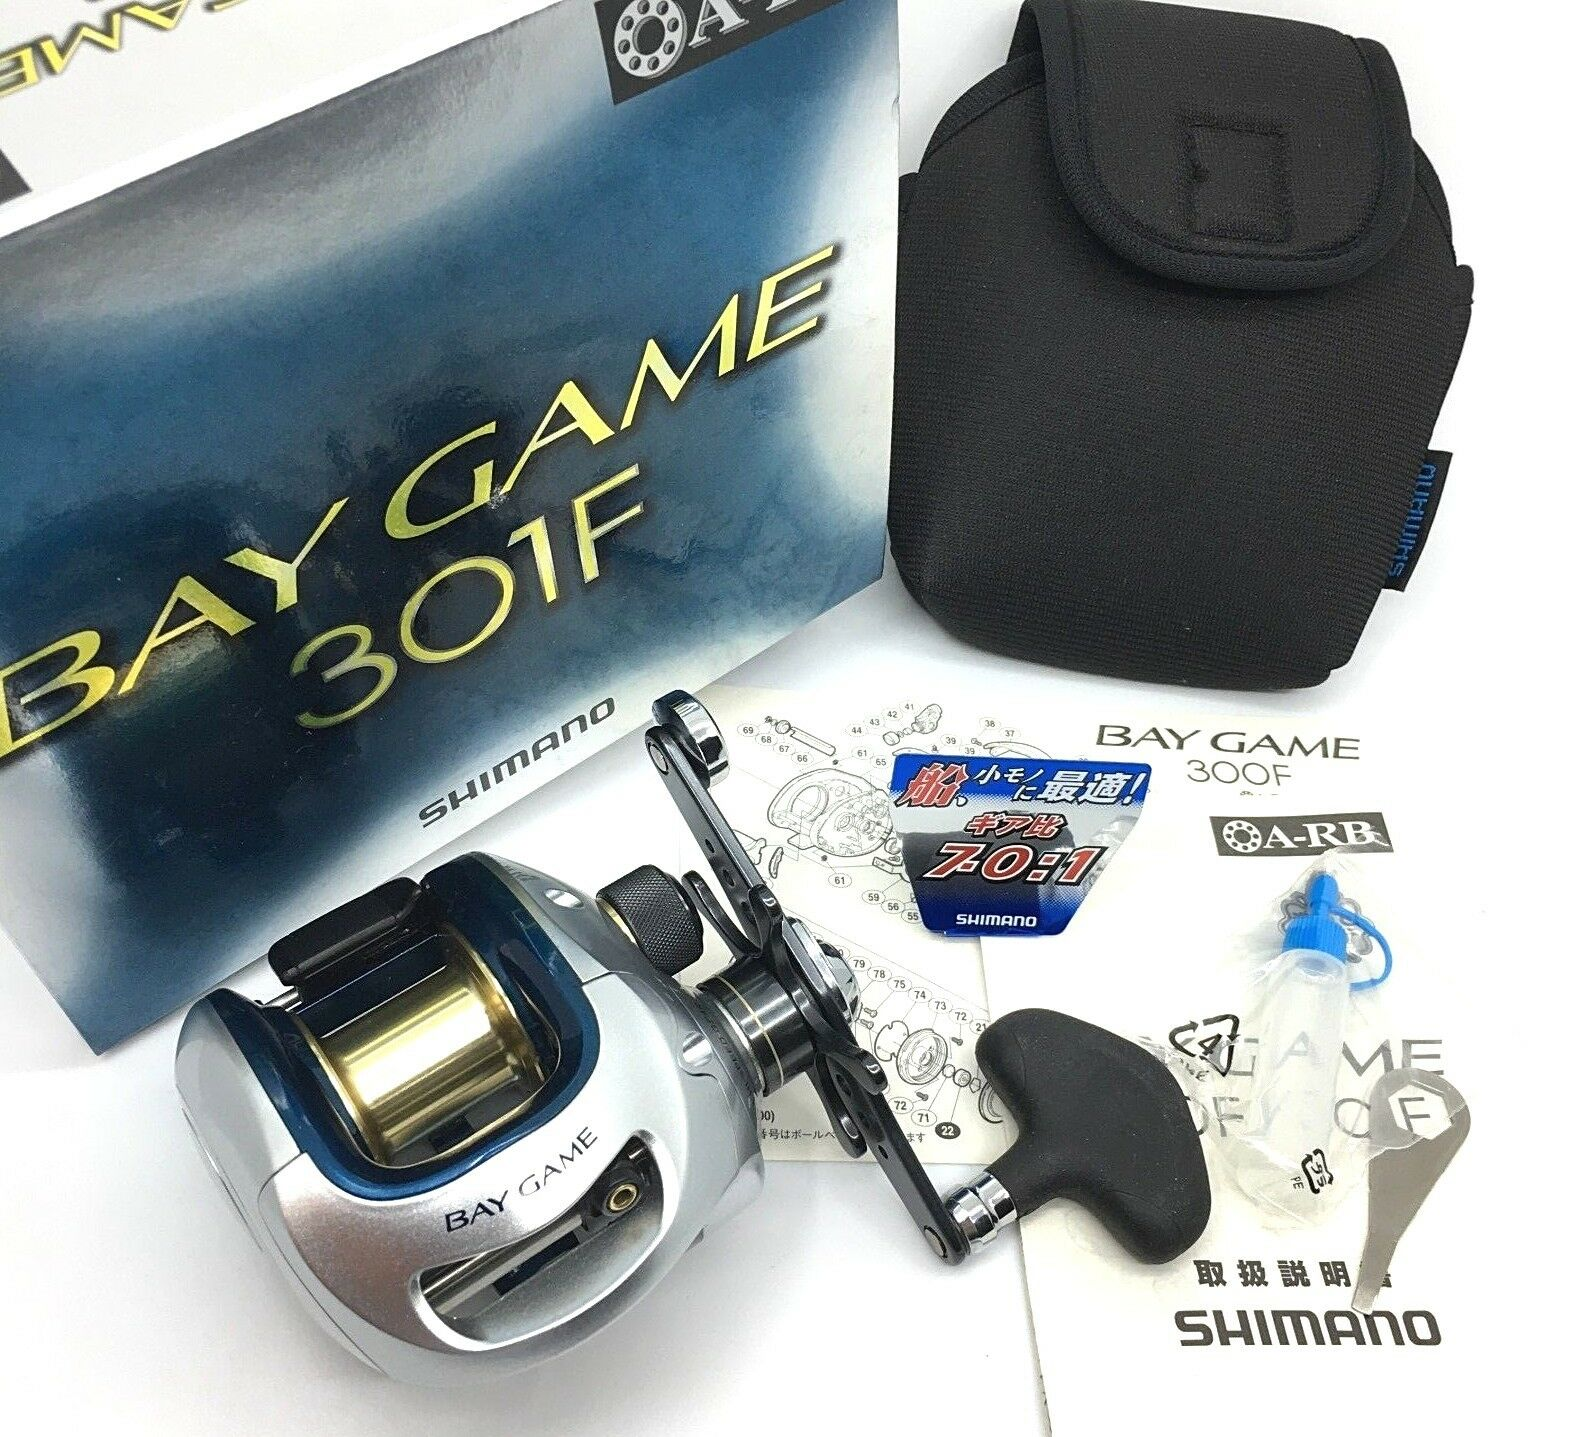 Shimano BAY GAME 301F Left Handed Bait Casting Reel with Case NEW  From JAPAN